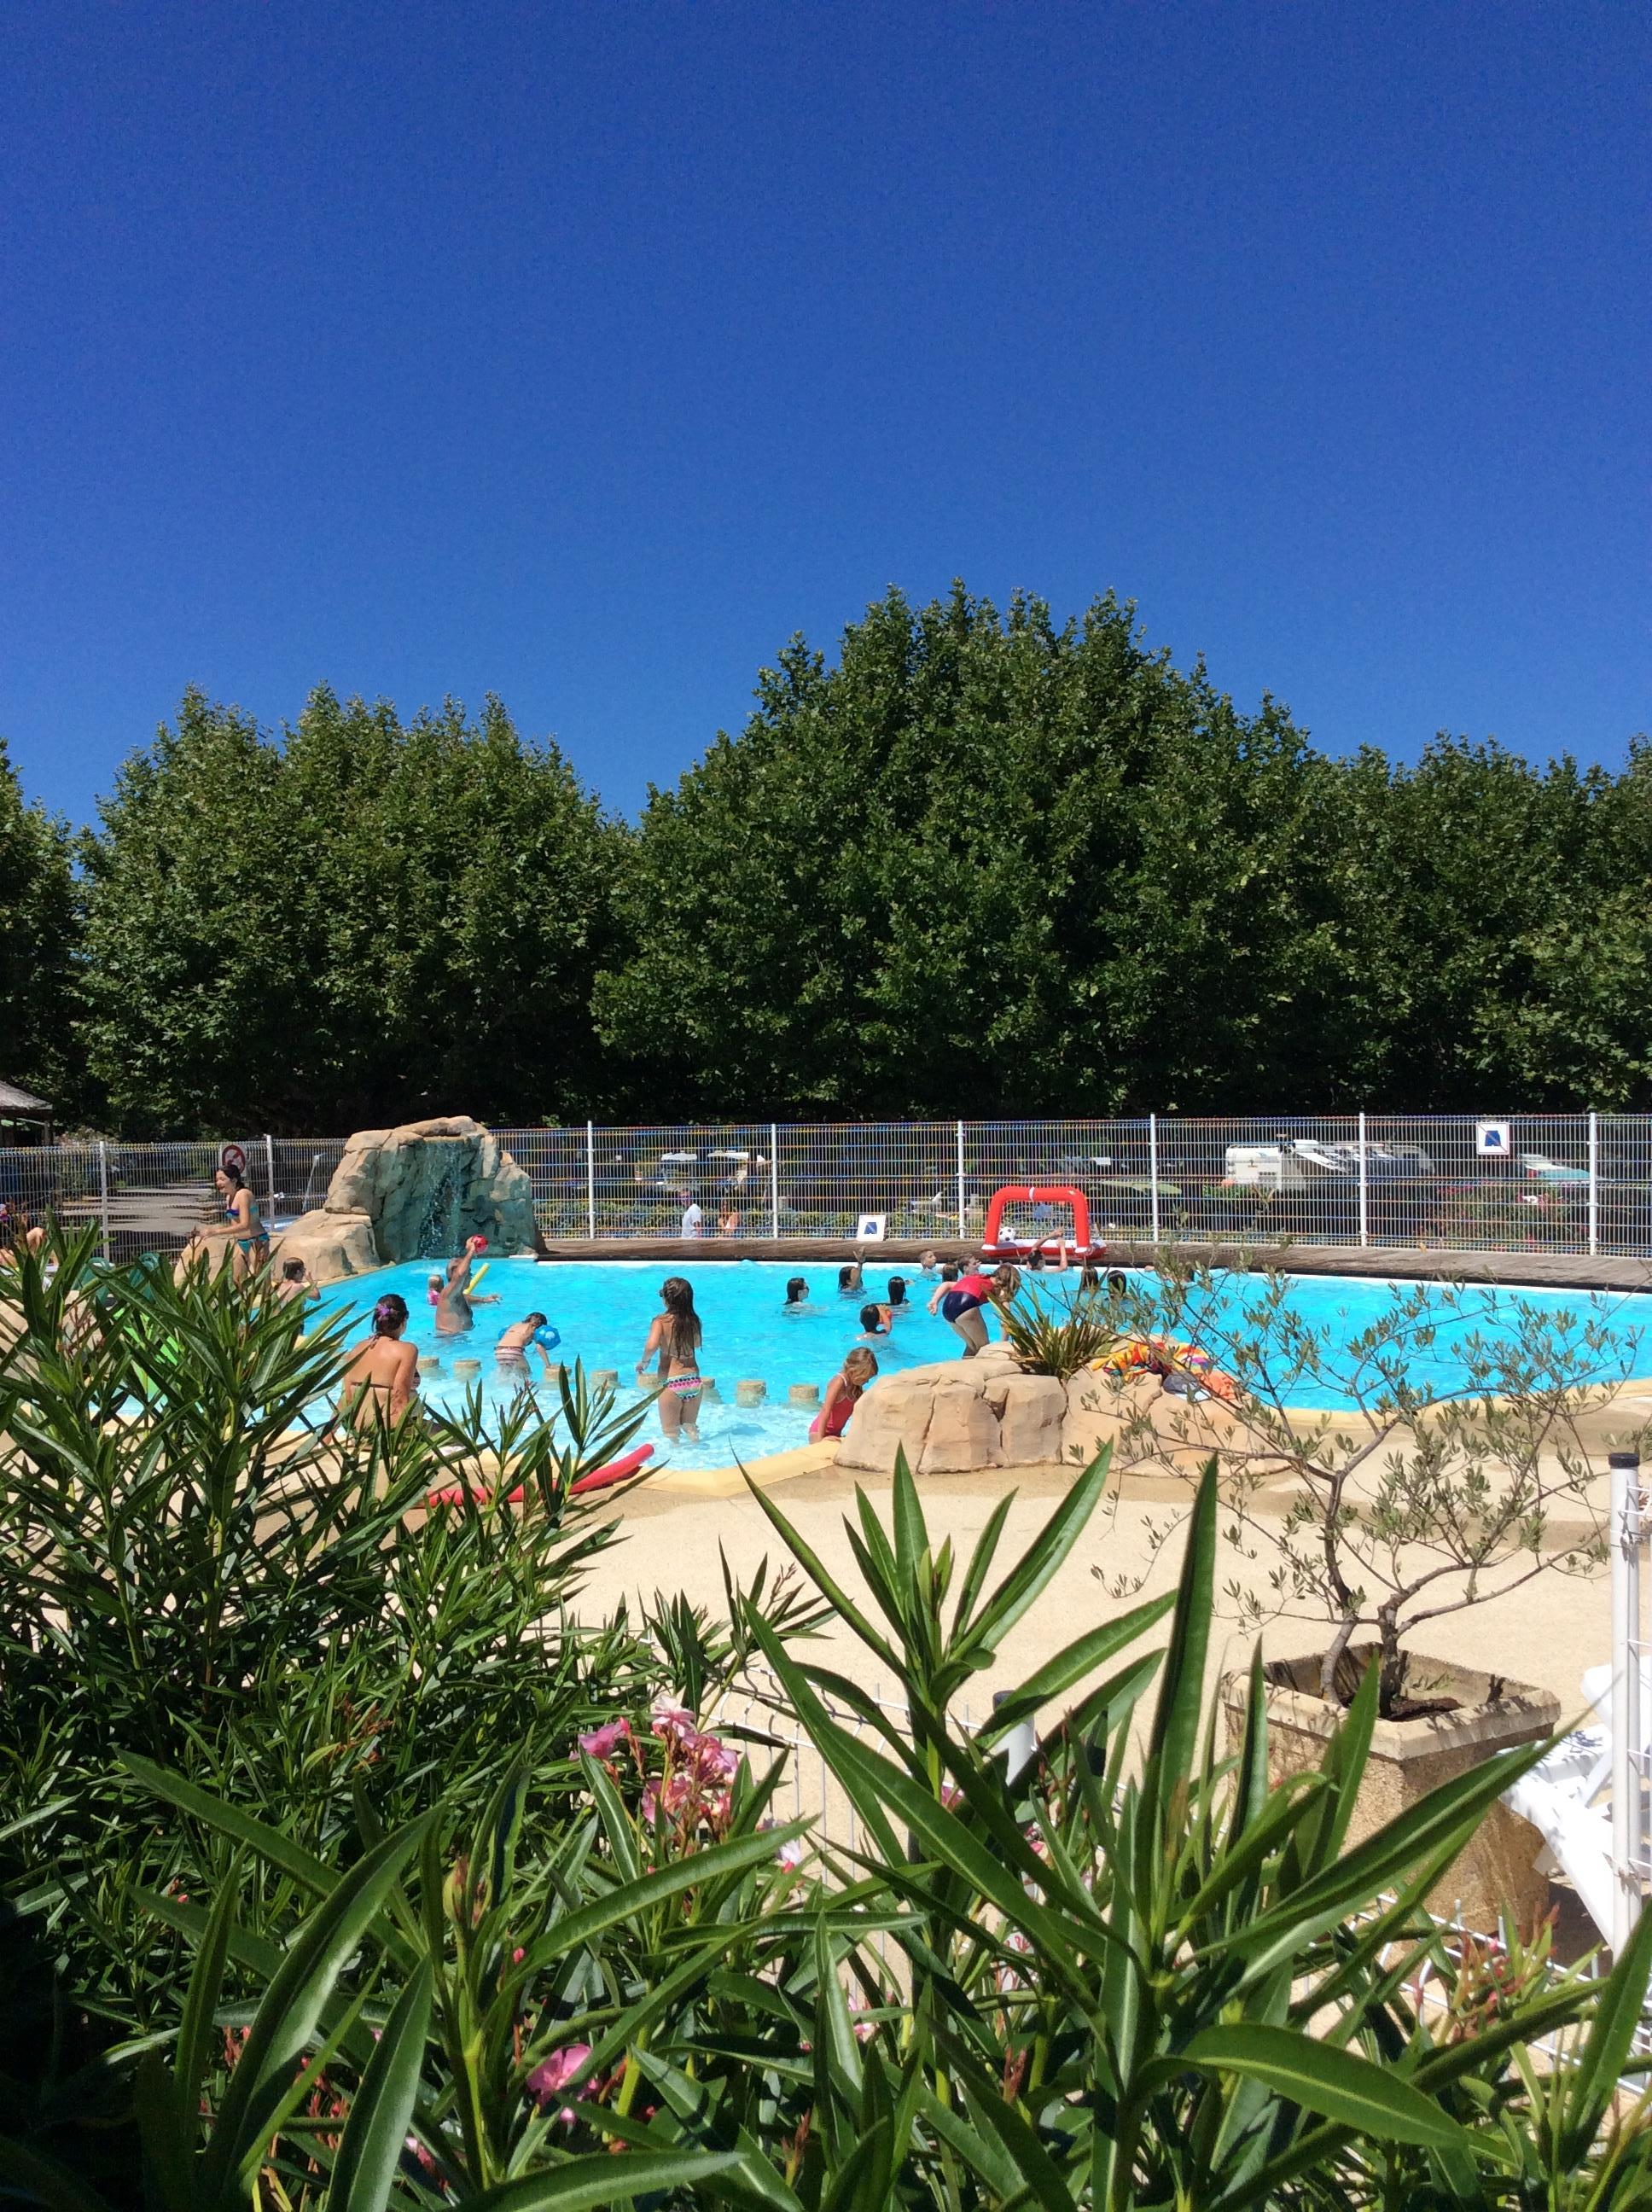 Bedrijf International Camping - Vallon Pont d'Arc